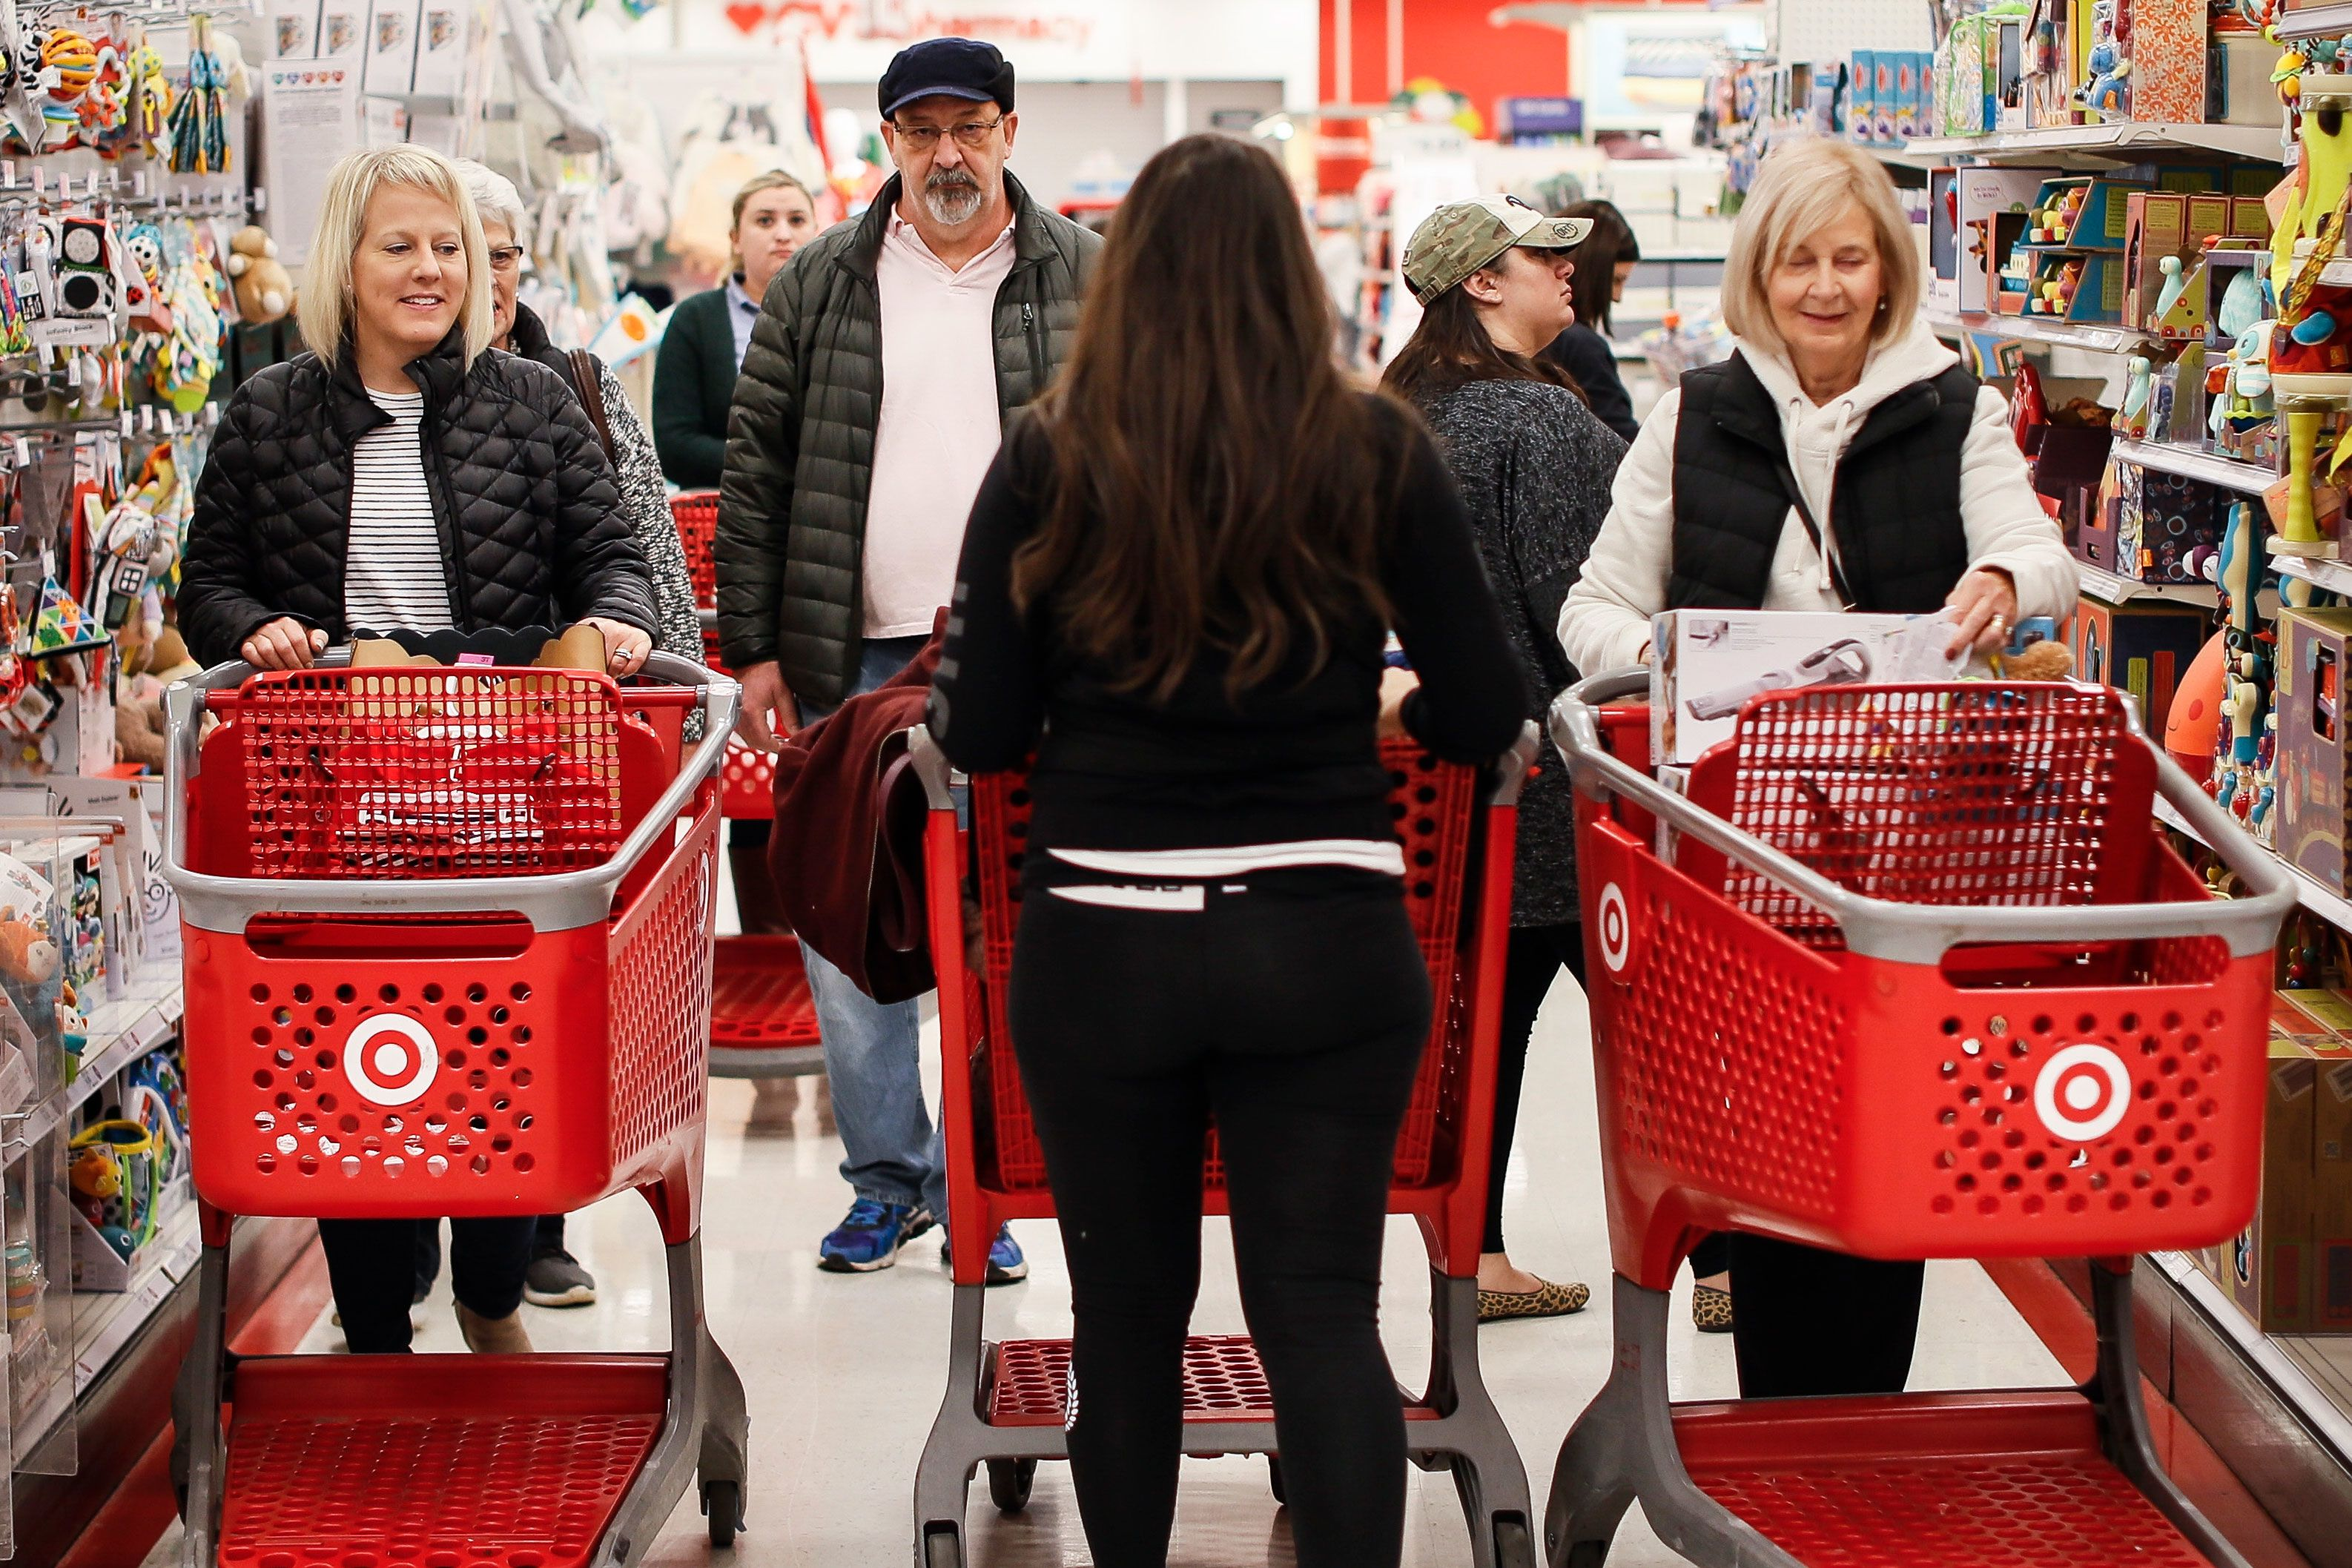 Target customers report issues checking out for second day after weekend outage